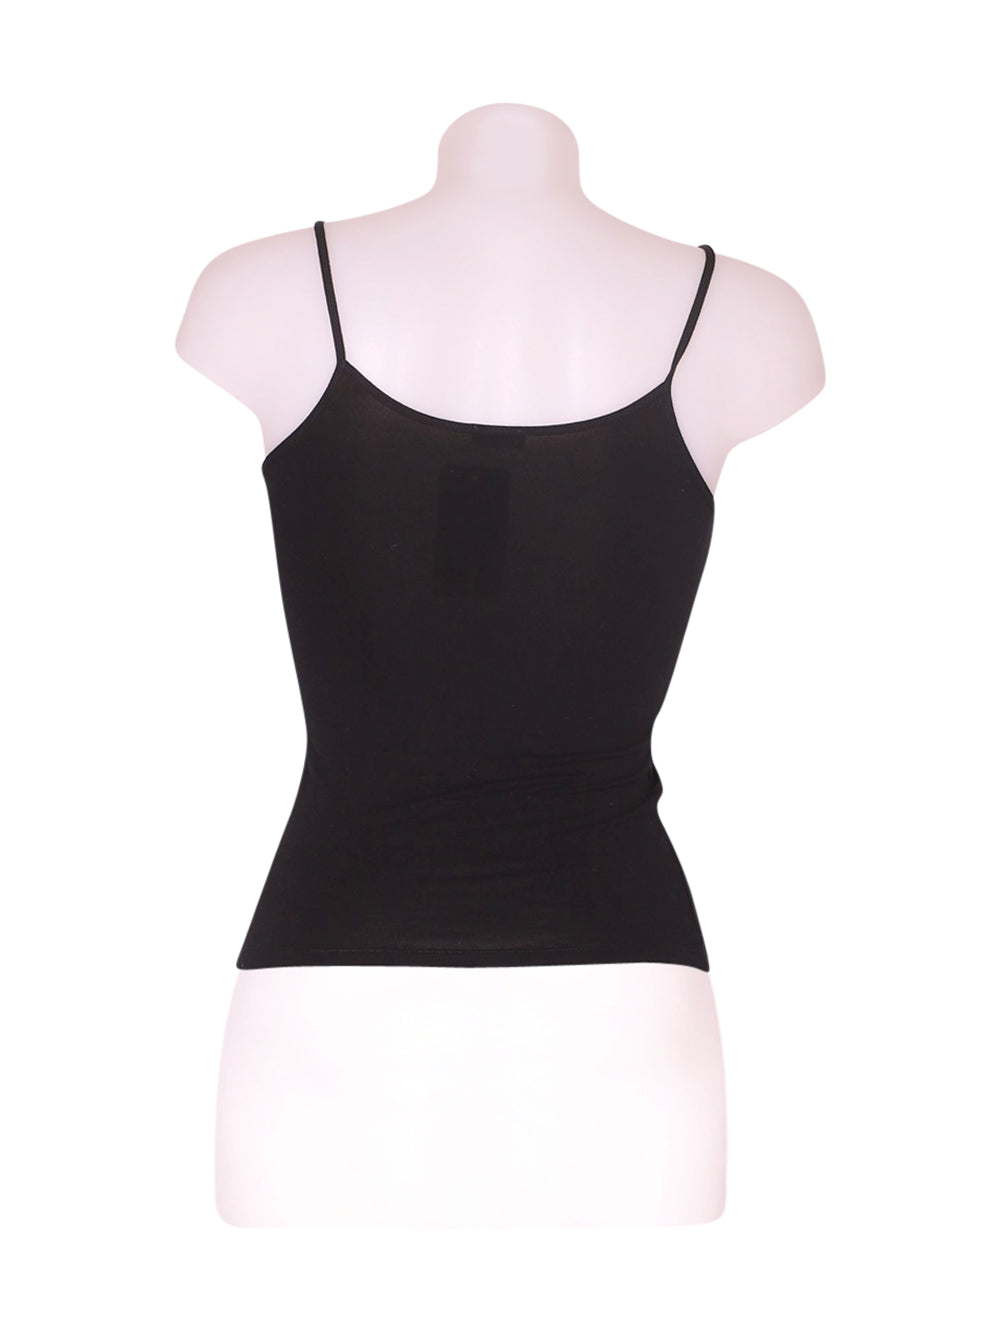 Back photo of Preloved Intimissimi Black Woman's sleeveless top - size 6/XS